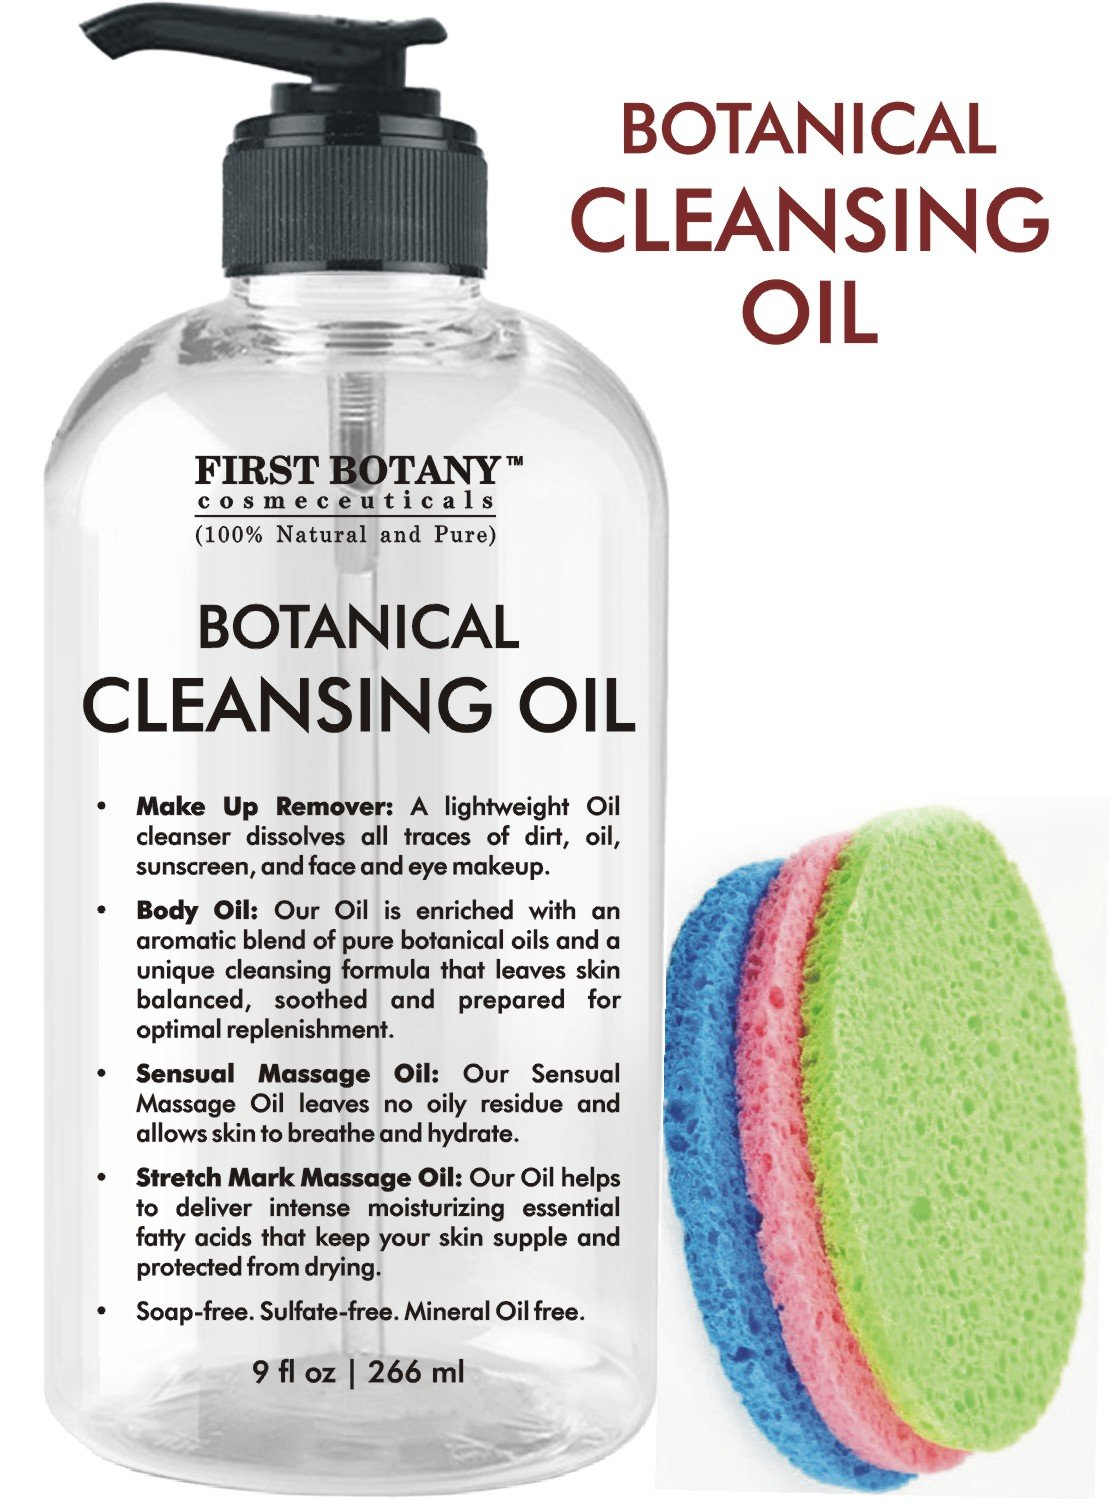 Deep Cleansing Oil - 100% Pure & Natural, 9 fl oz with Sponges - Botanical Facial Cleanser, Eye Makeup Remover, Stretch Mark oil & Massage Oil Private Label Cosmetics Coorp